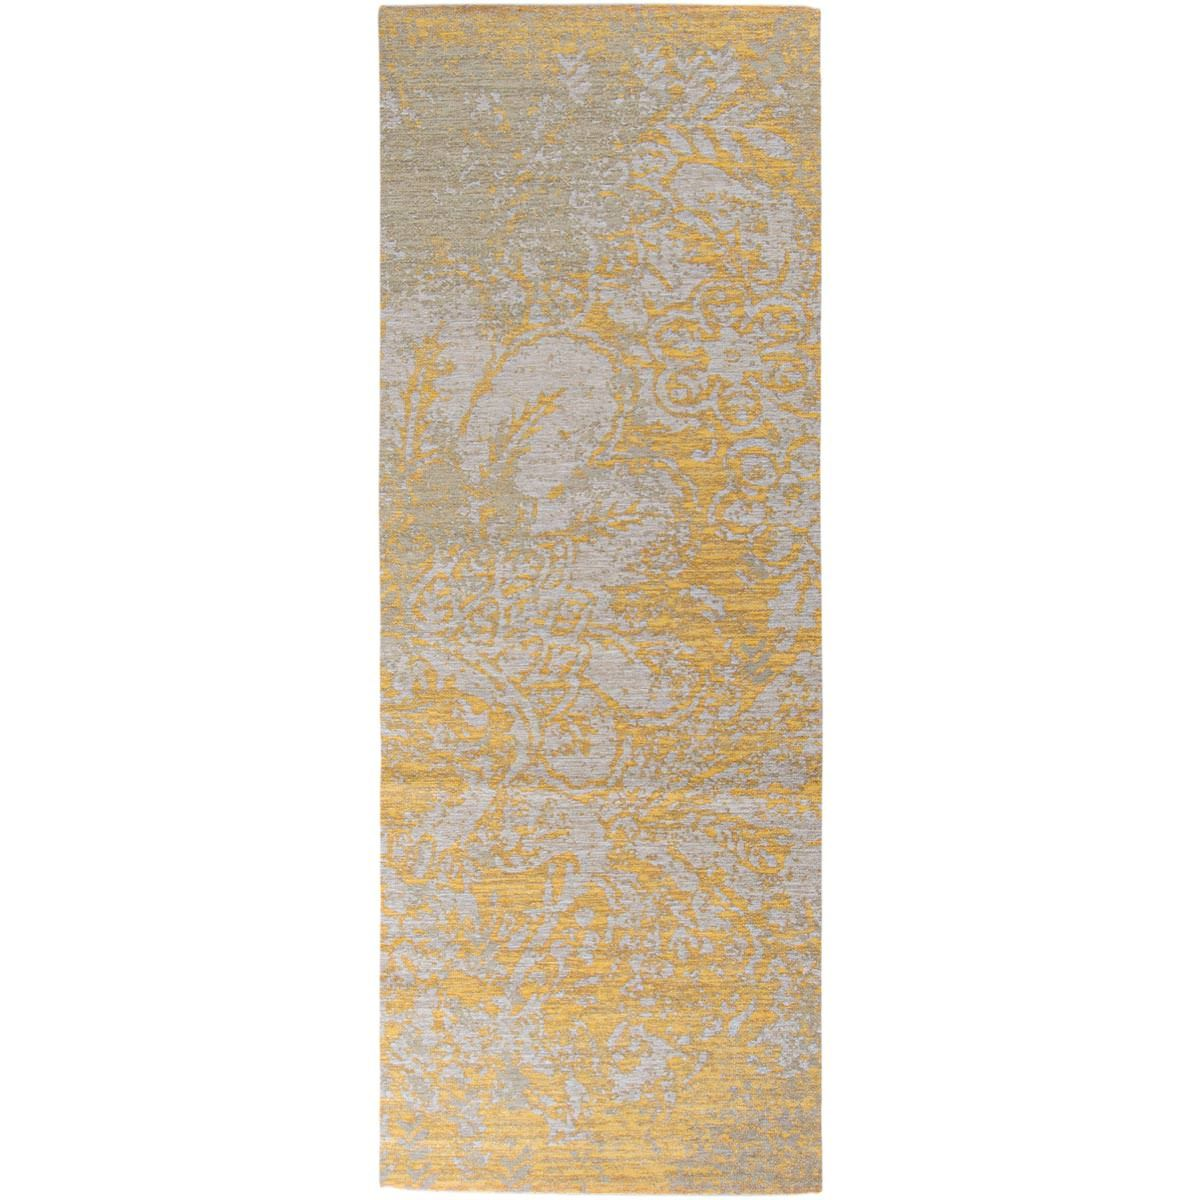 Marseille Rug 29 Yellow/Grey Runner 1